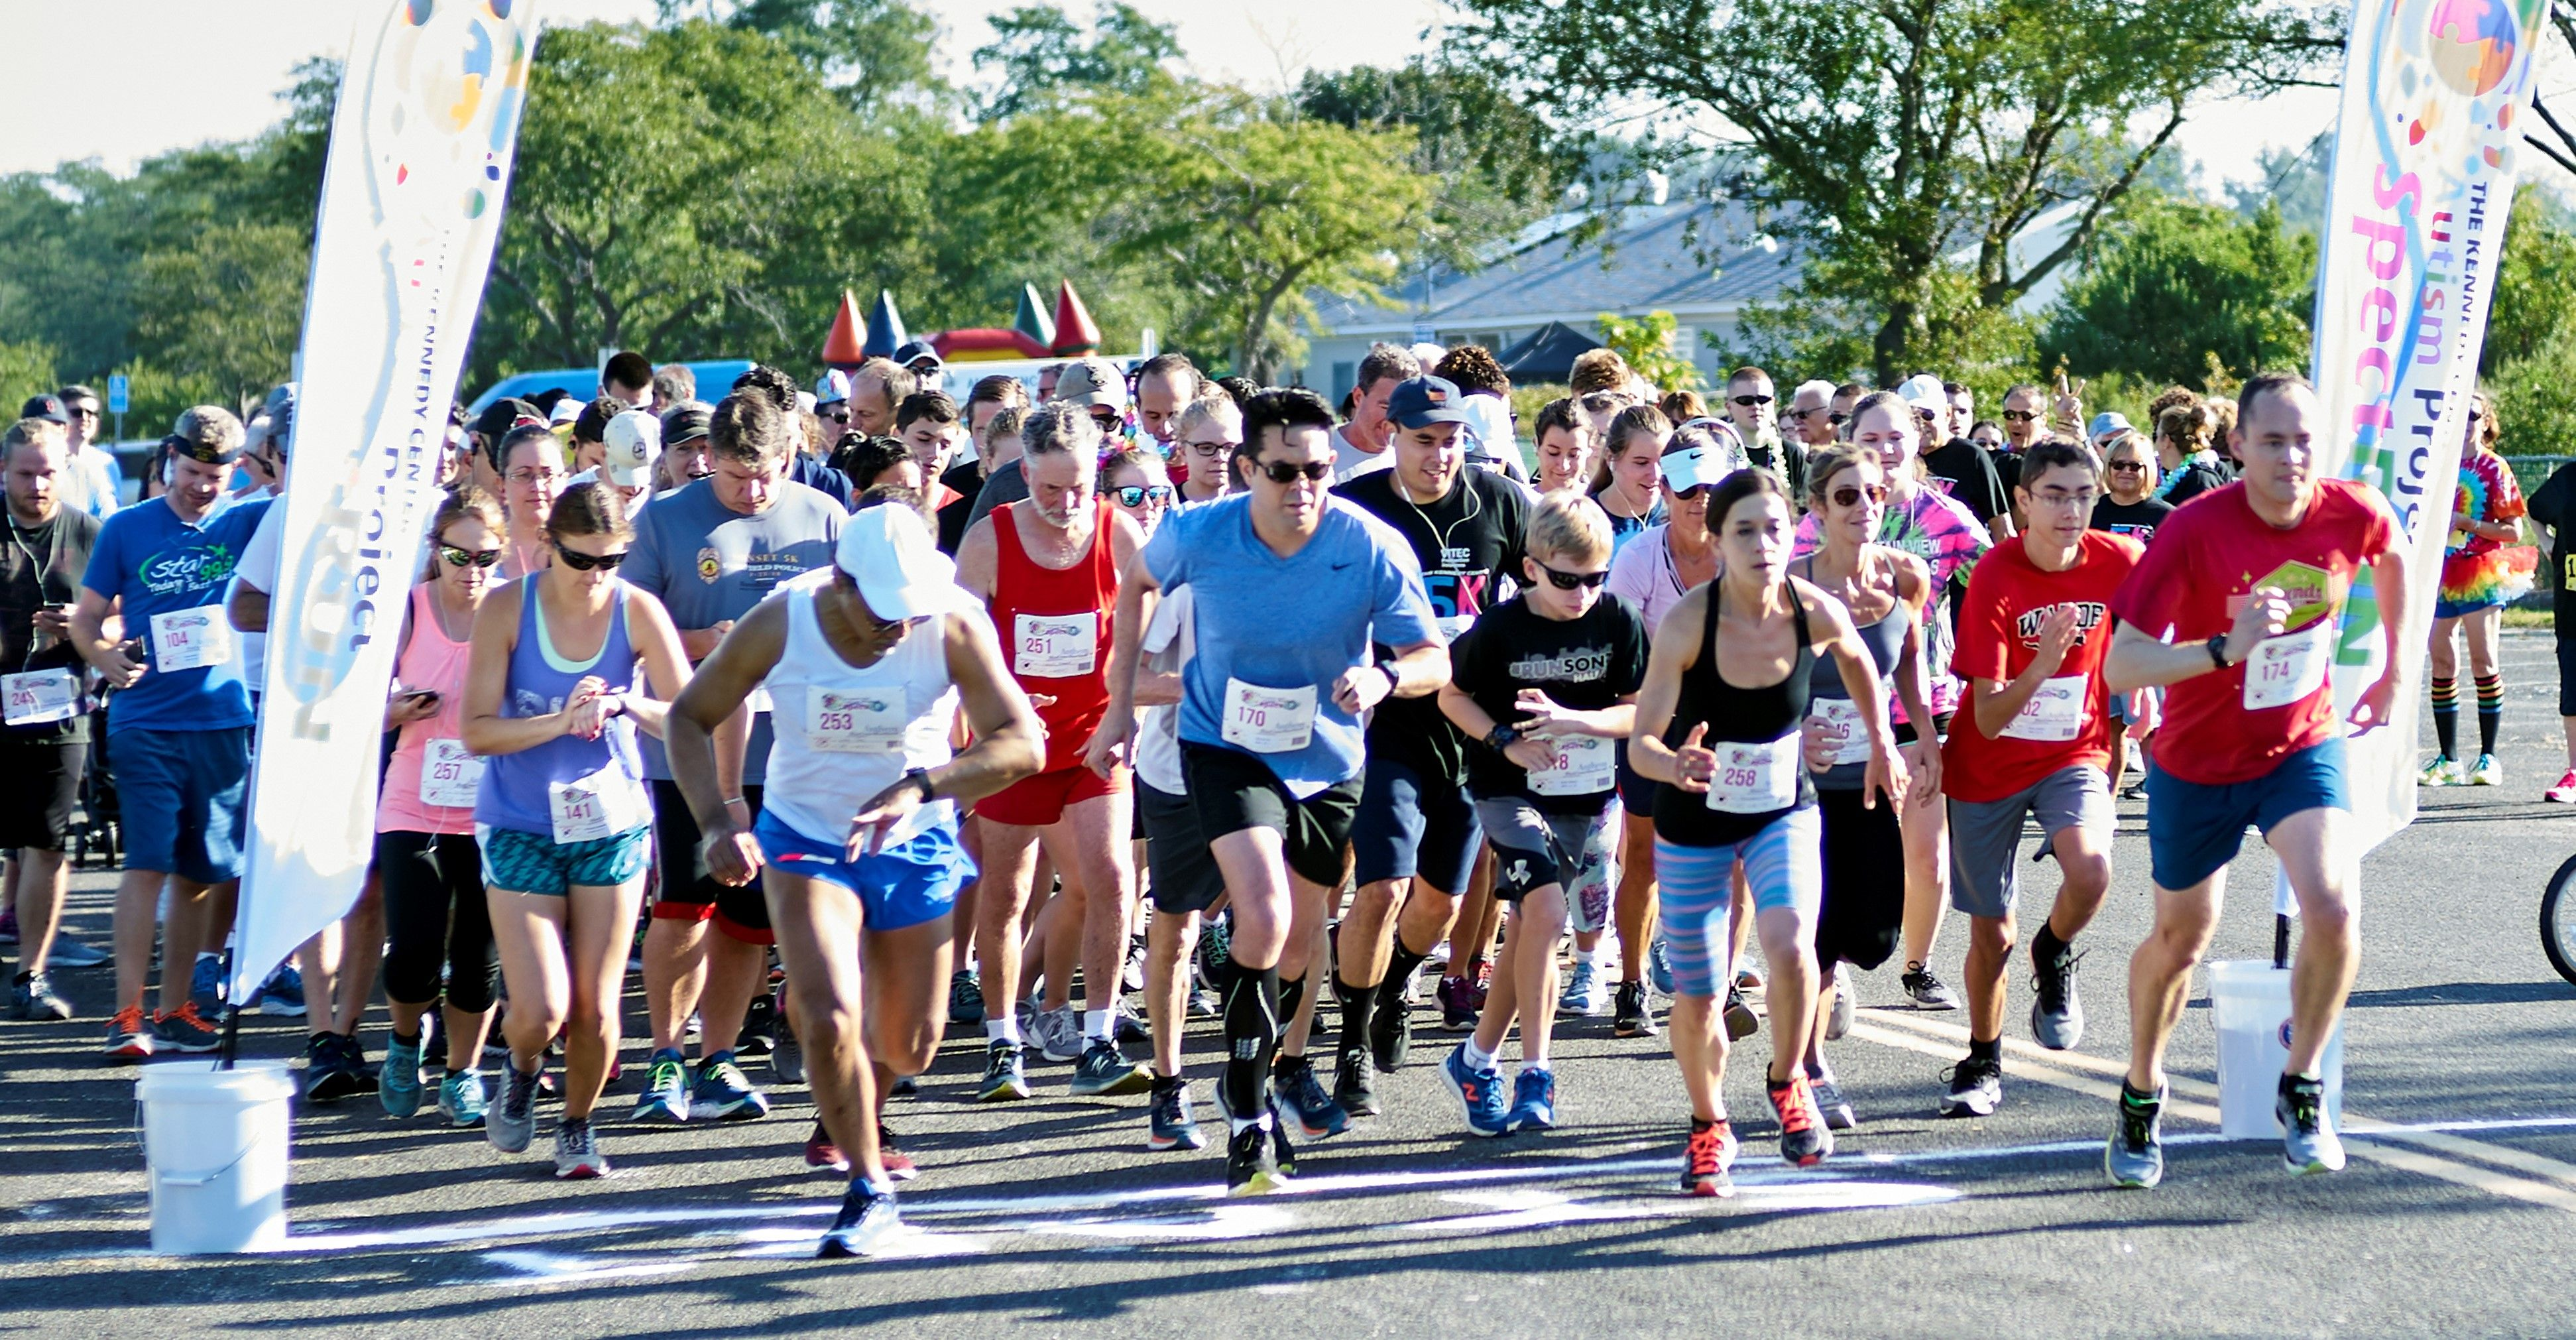 Registration is Open for the Autism SpectRUN on Sunday, Sept. 8, 2019